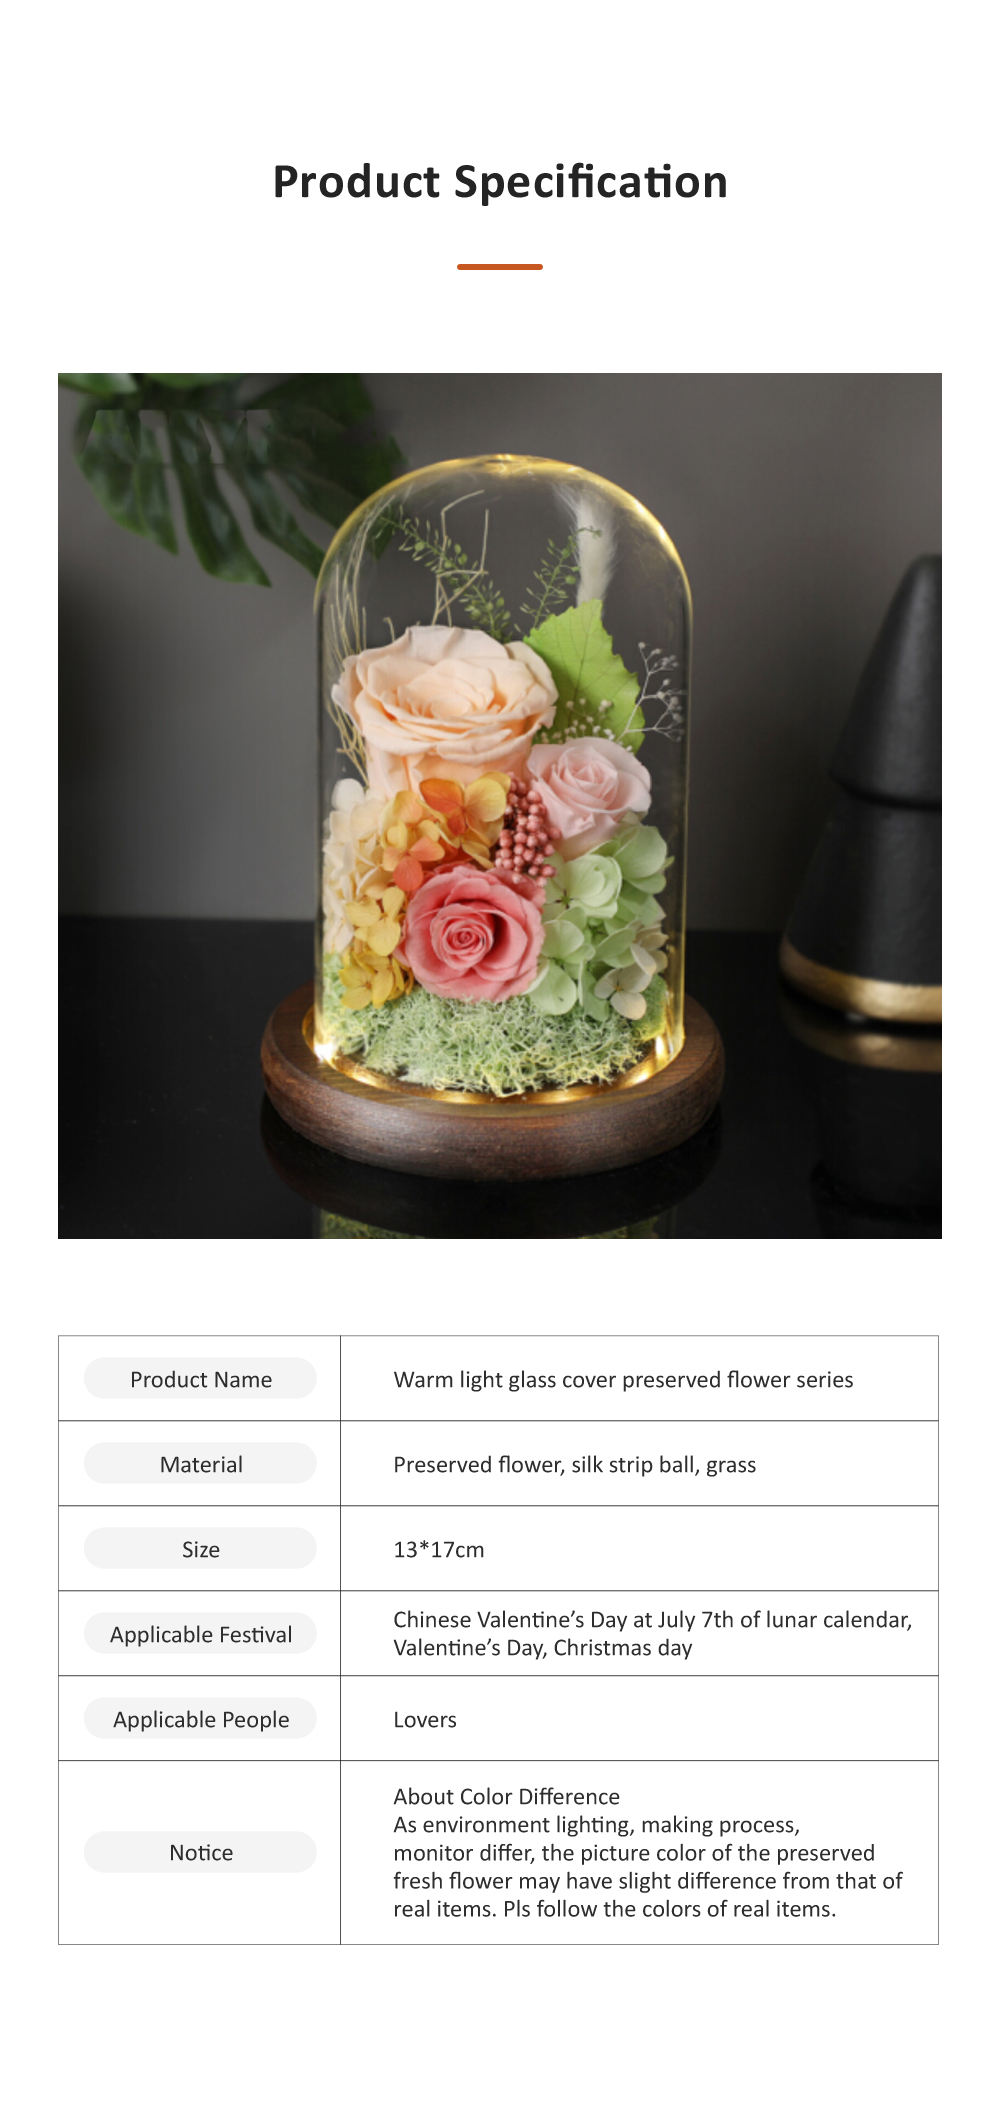 AMYROS Preserved Fresh Flower for Valentine's Day Christmas Dry Rose Bouquet Glass Covered Preserved Fresh Flower 6